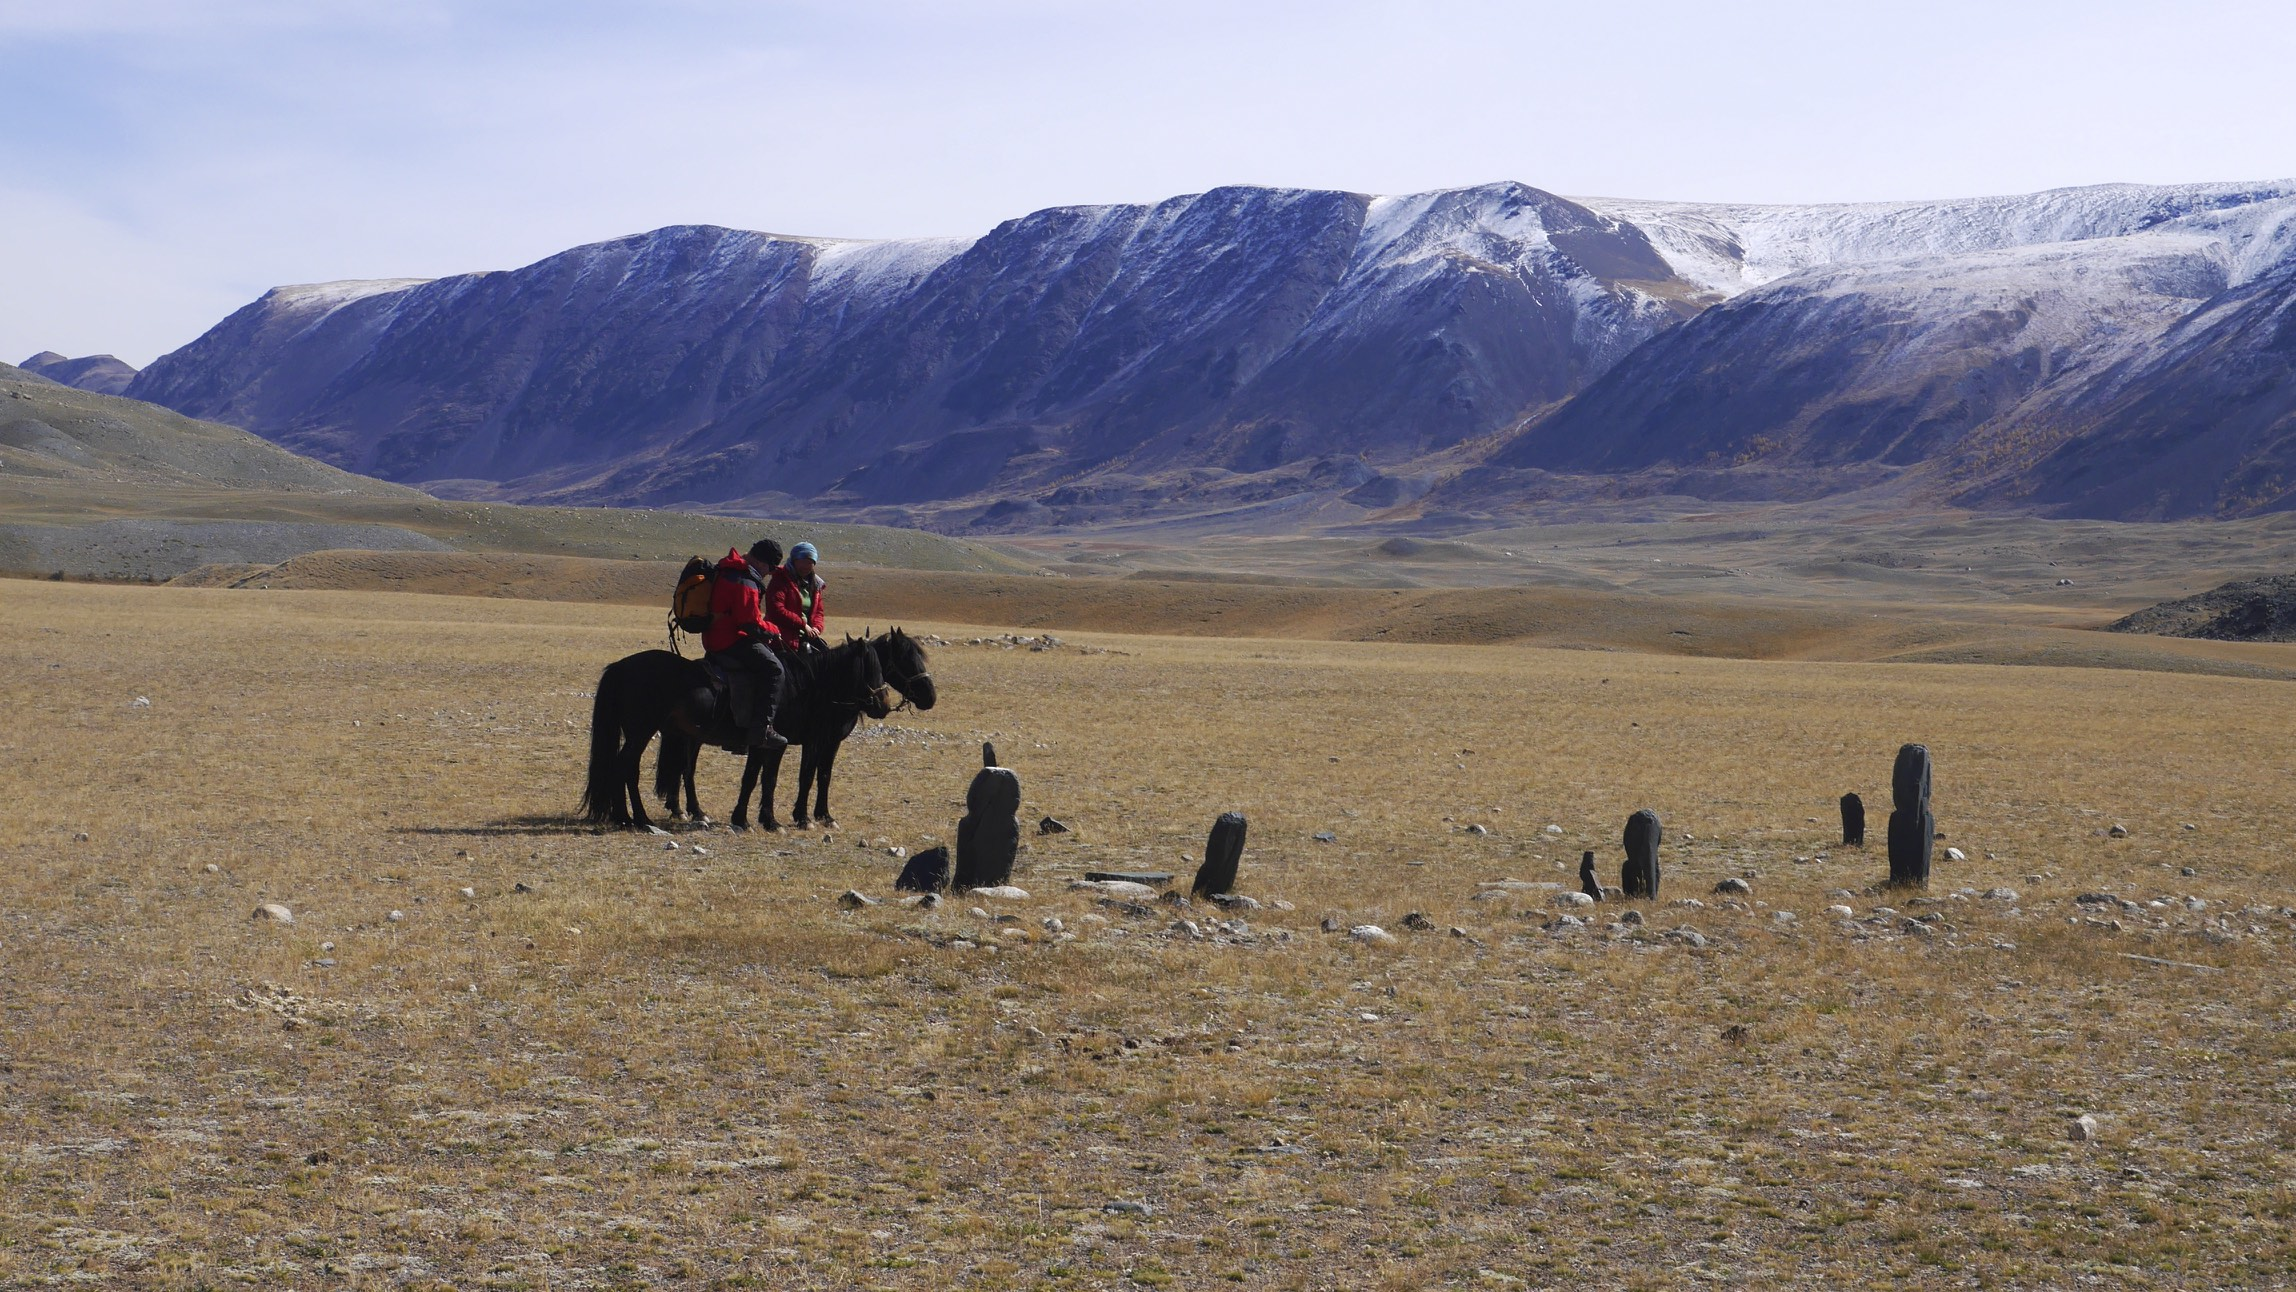 Ancient markers and grave stones in Western Mongolia